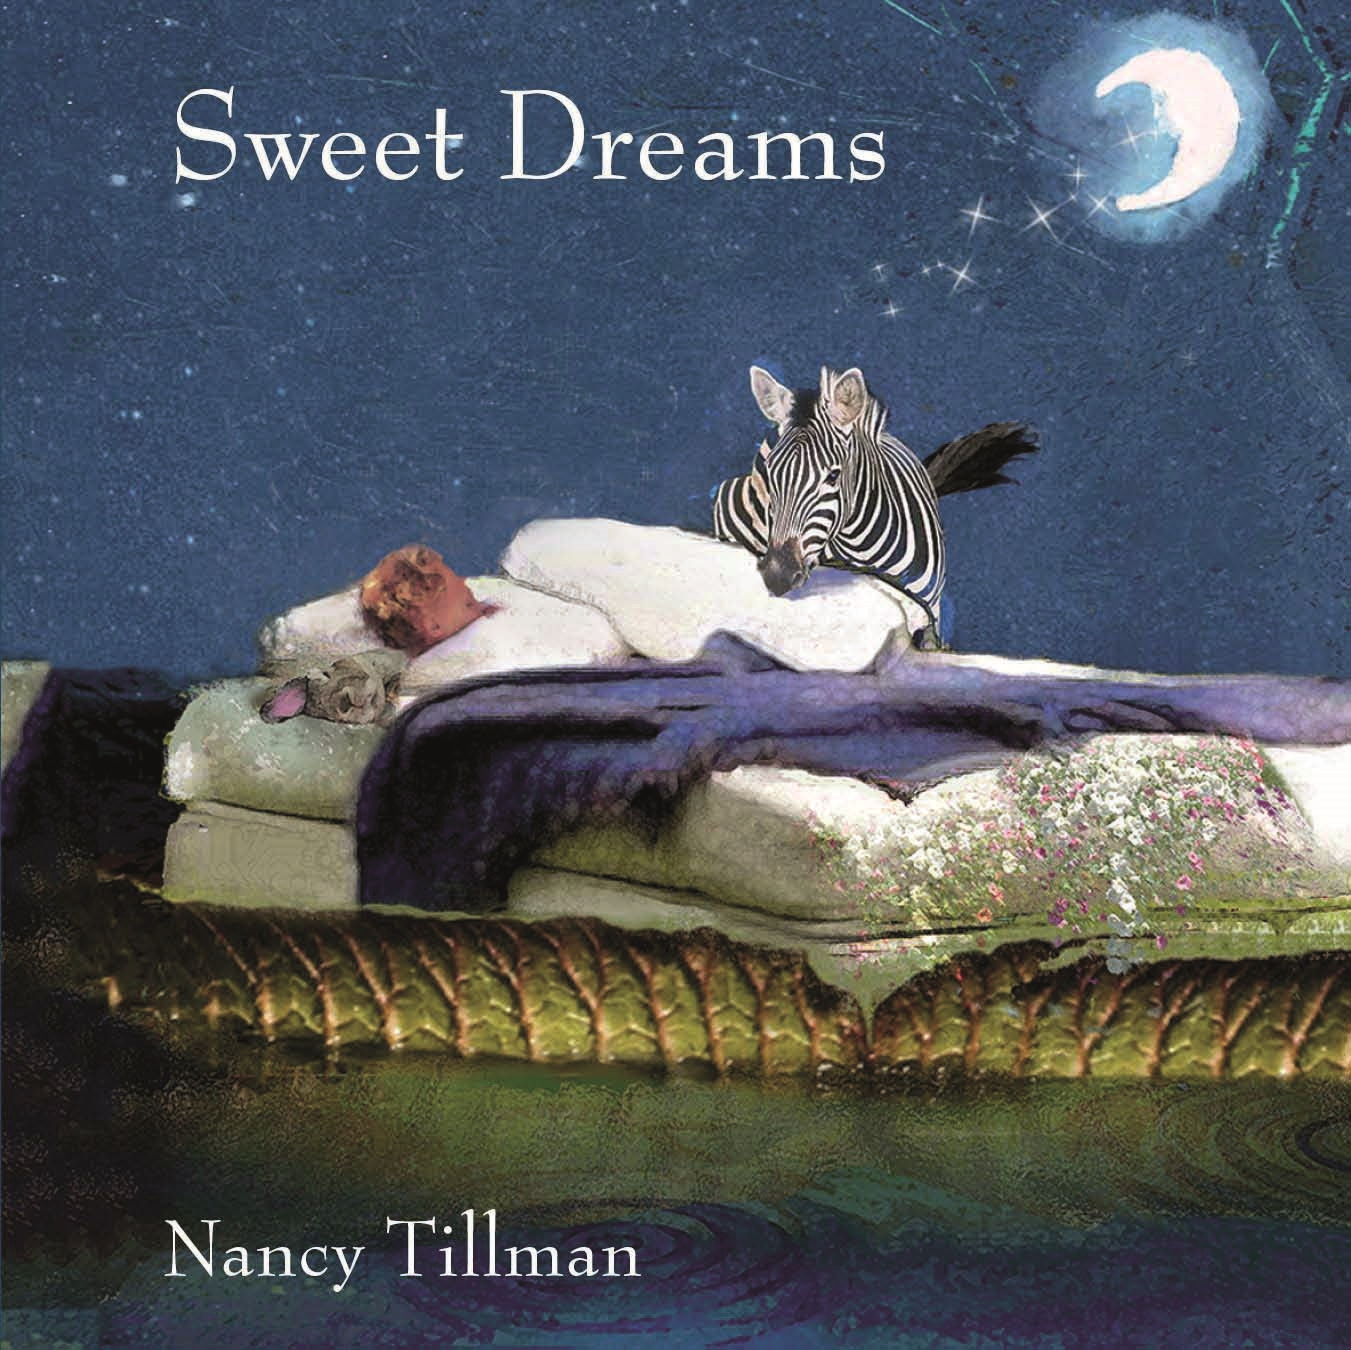 Interior book image for Nancy Tillman's The World Is a Wonderland Collection